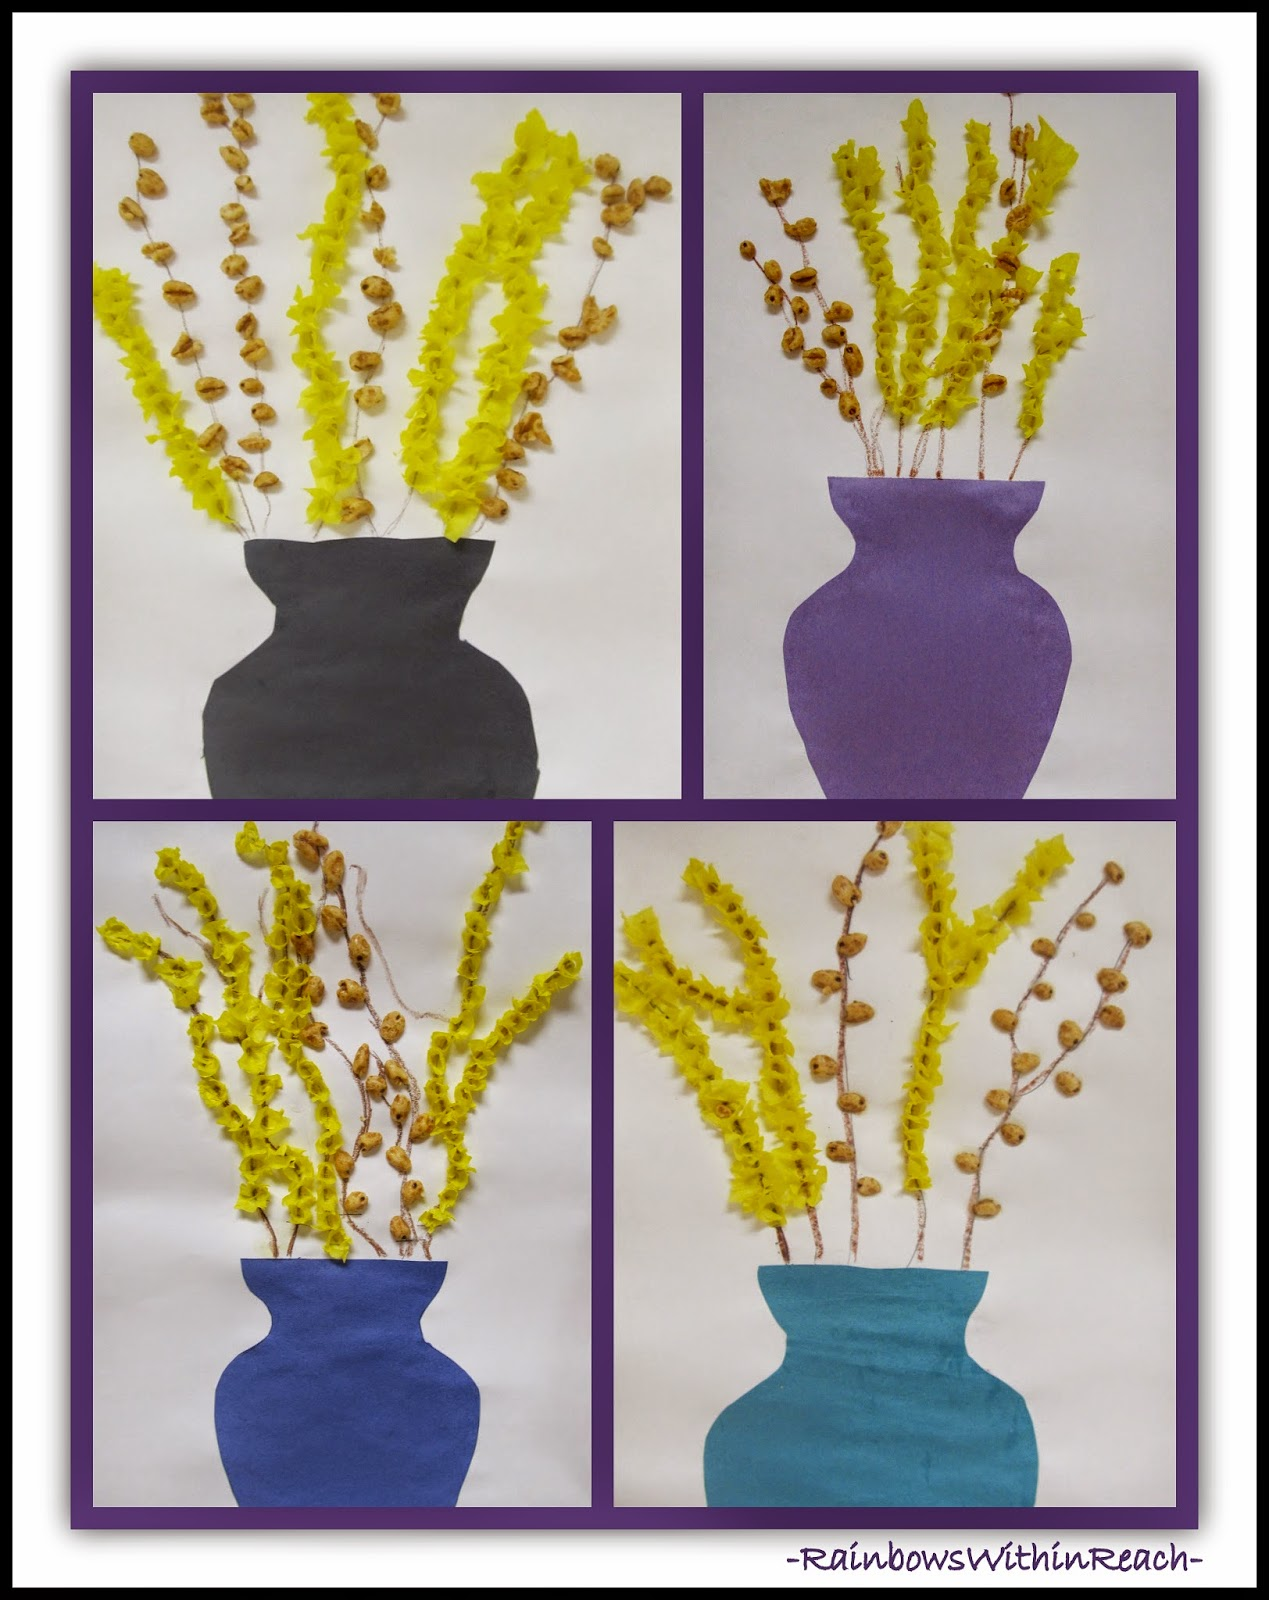 3D Multi-media Spring Forsythia in Vase at RainbowsWithinReach